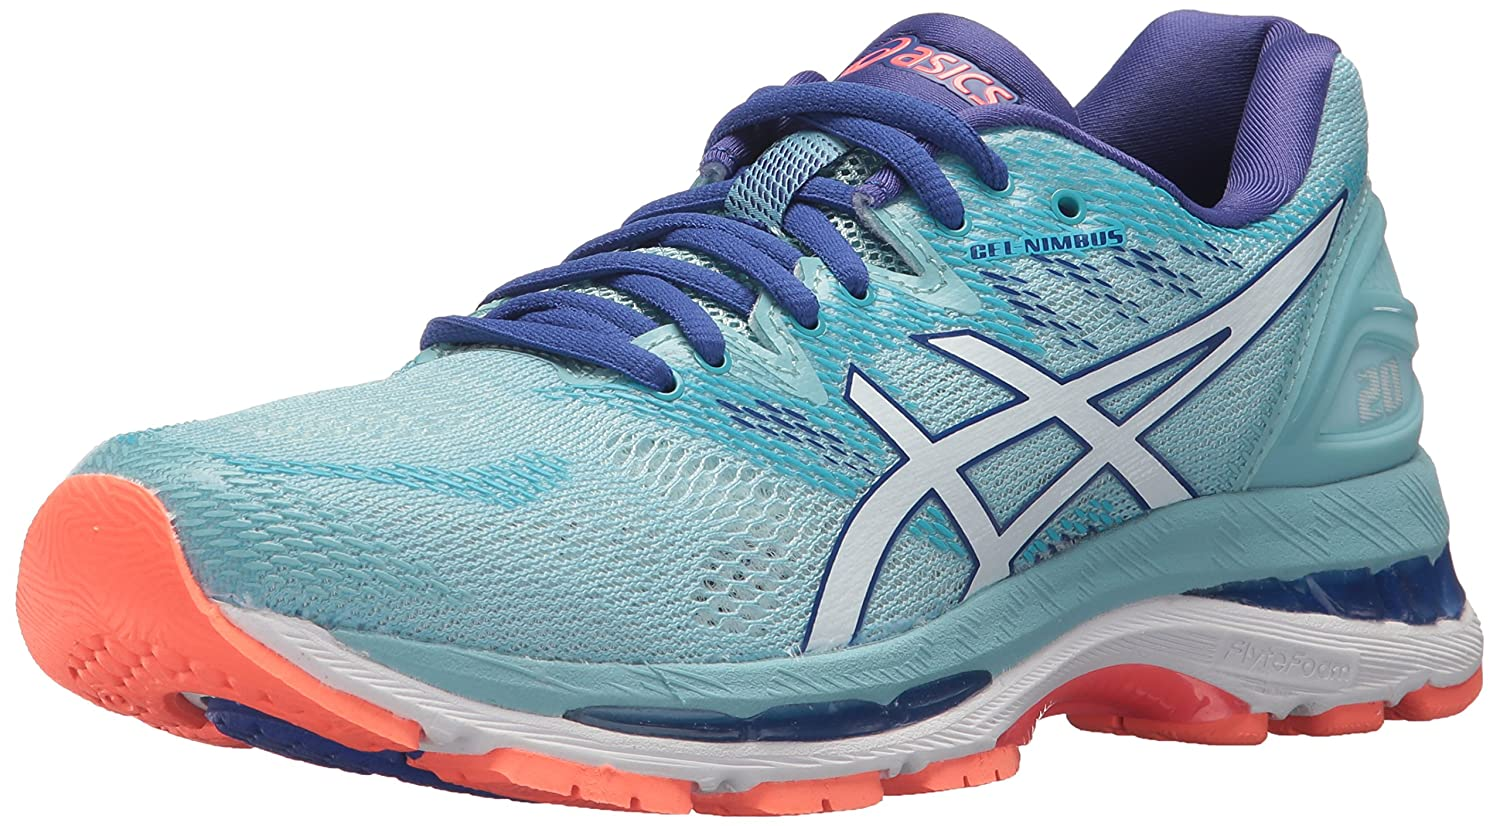 ASICS Women's Gel-Nimbus 20 Running Shoe B071LFP82S 5.5 B(M) US|Porcelain Blue/White/Asics Blue